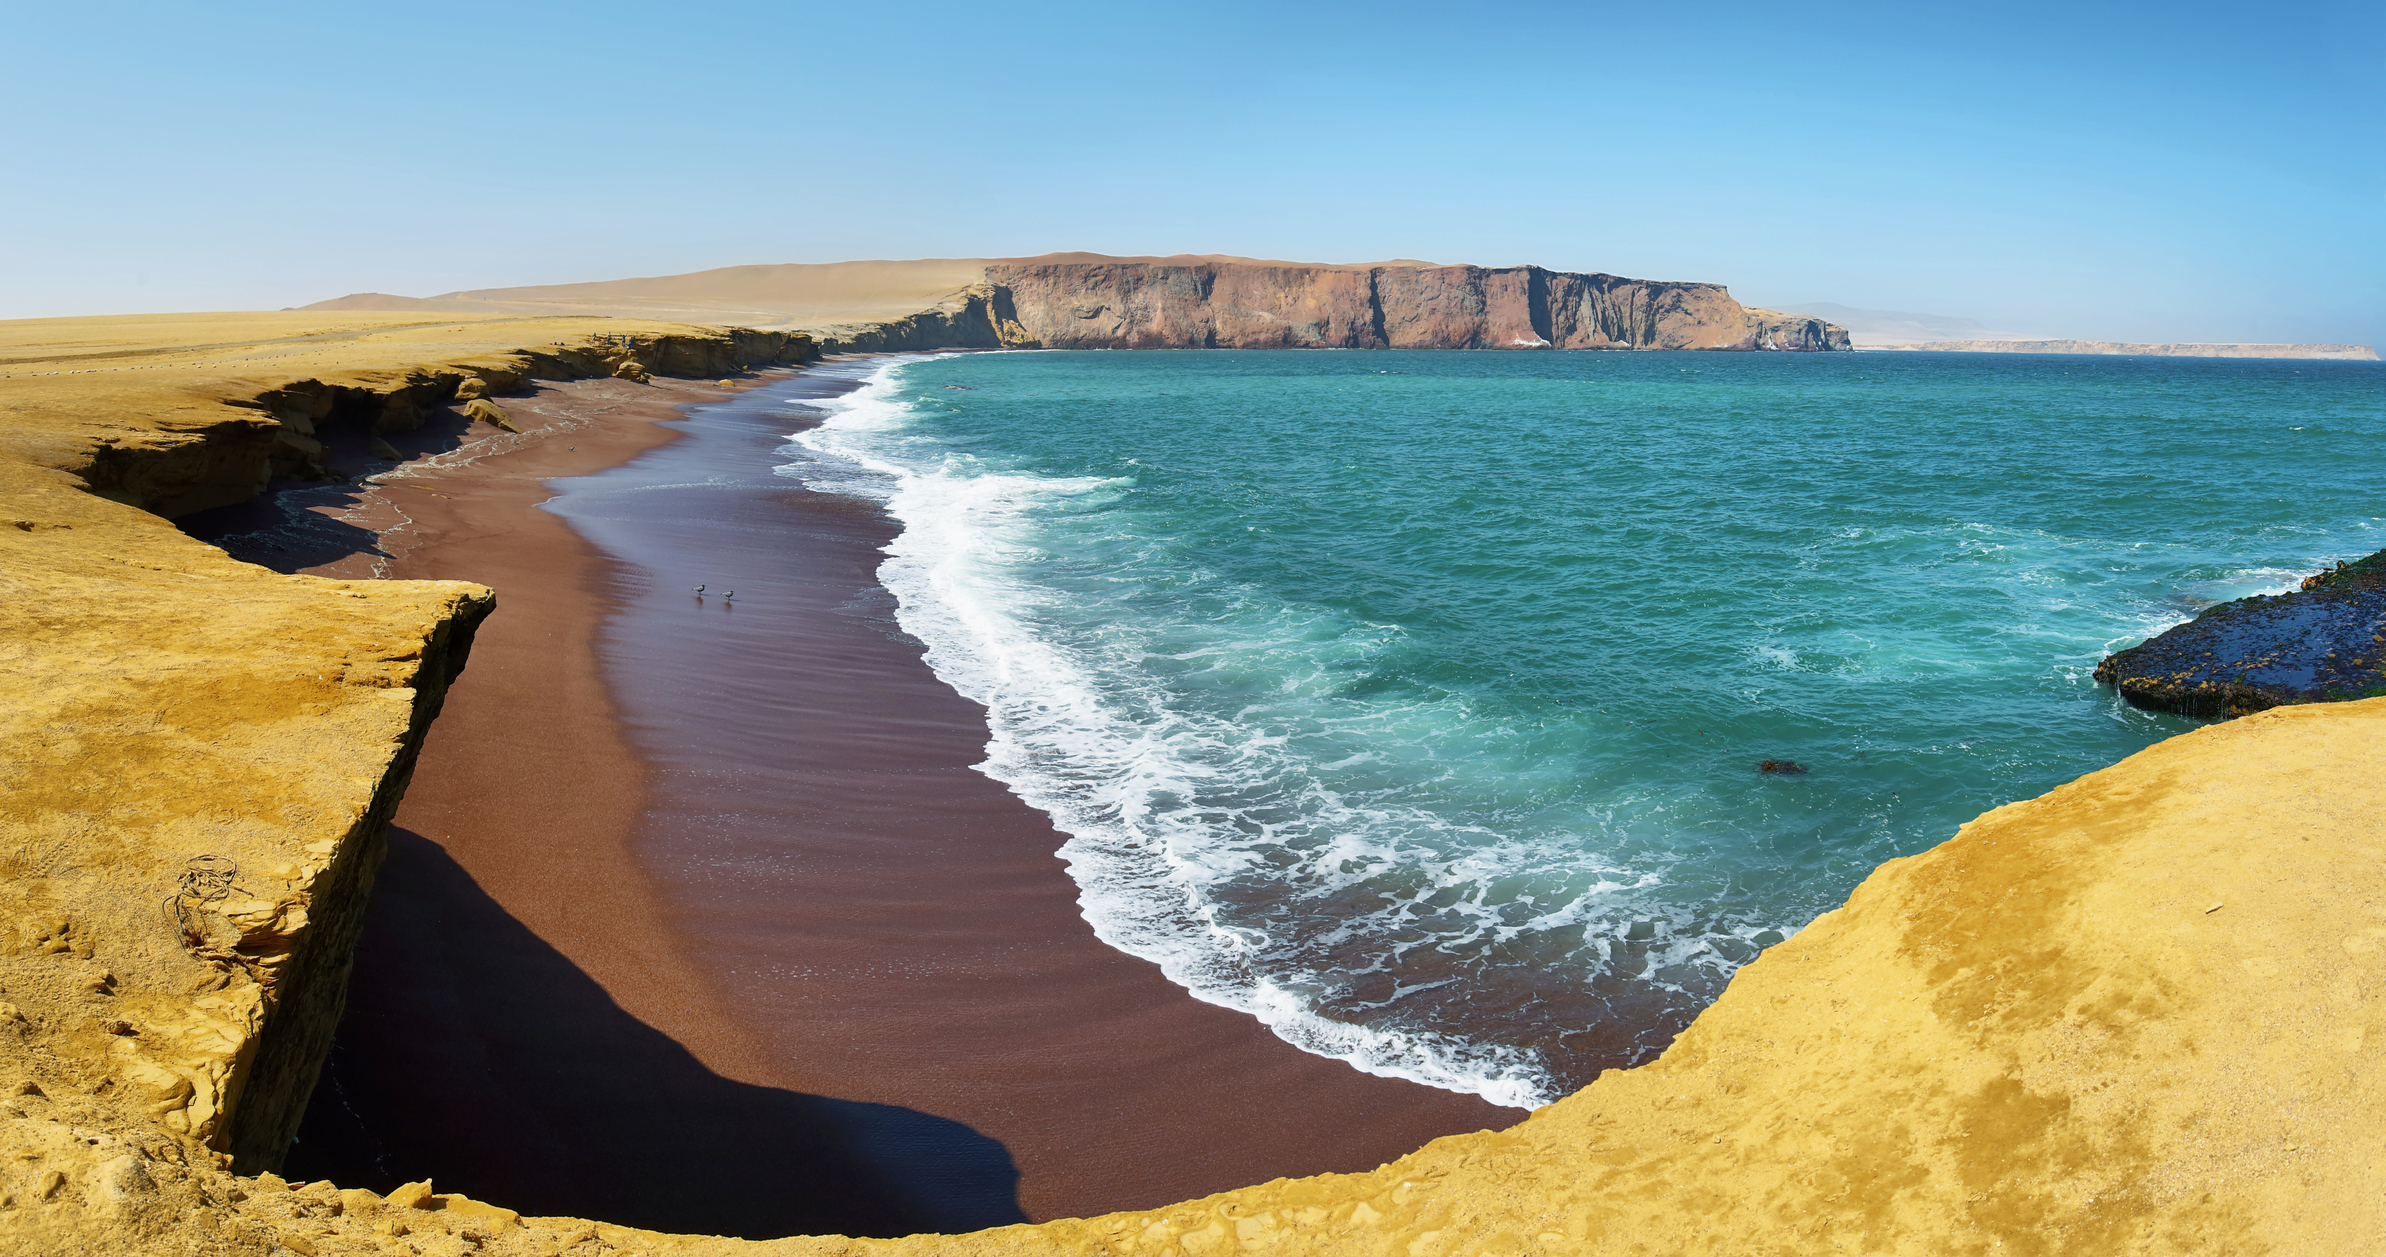 Waves crash upon the beach at Paracas National Reserve